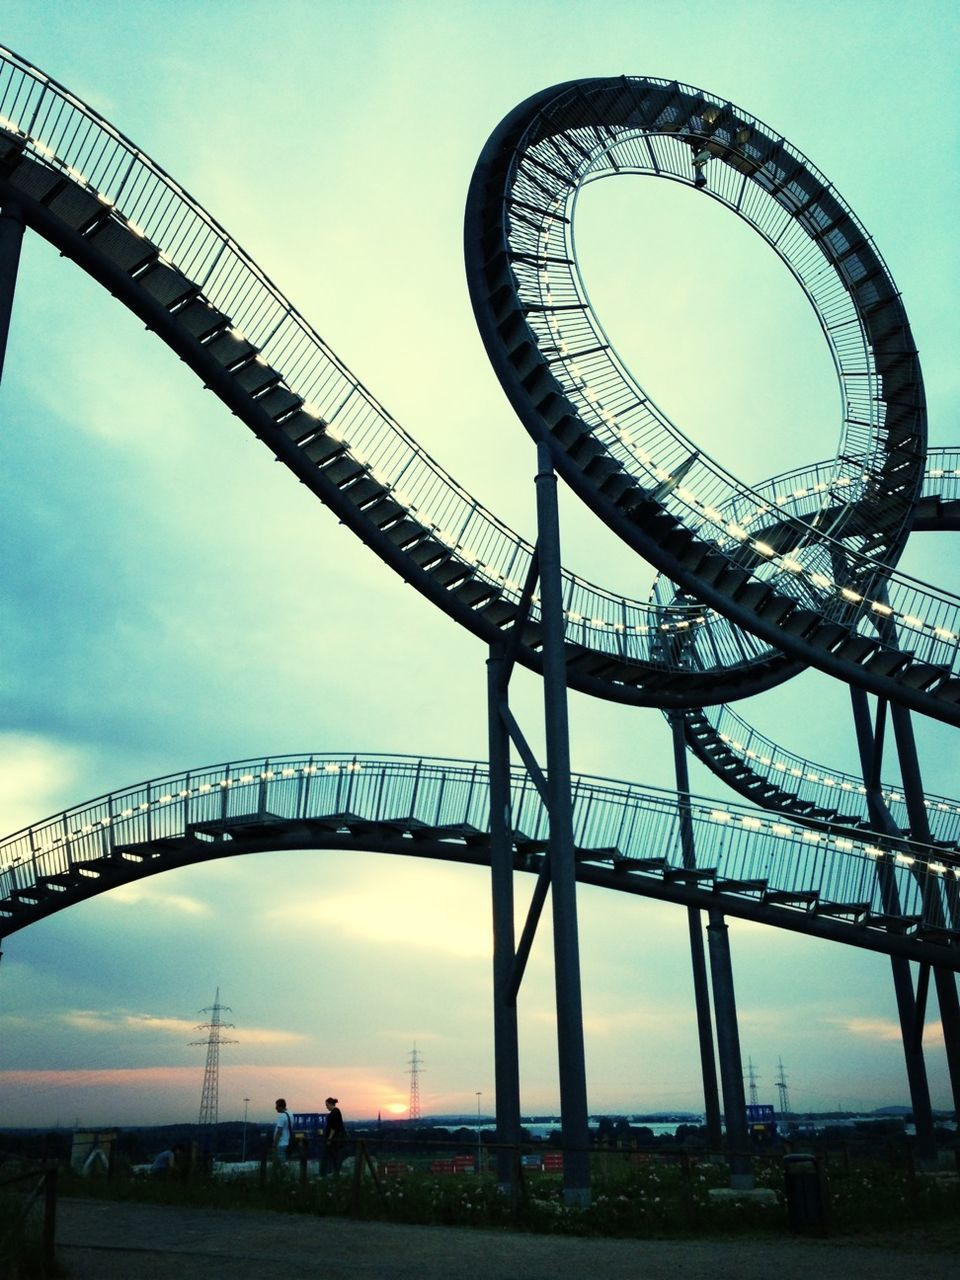 arts culture and entertainment, built structure, low angle view, amusement park, architecture, outdoors, bridge - man made structure, day, sky, large group of people